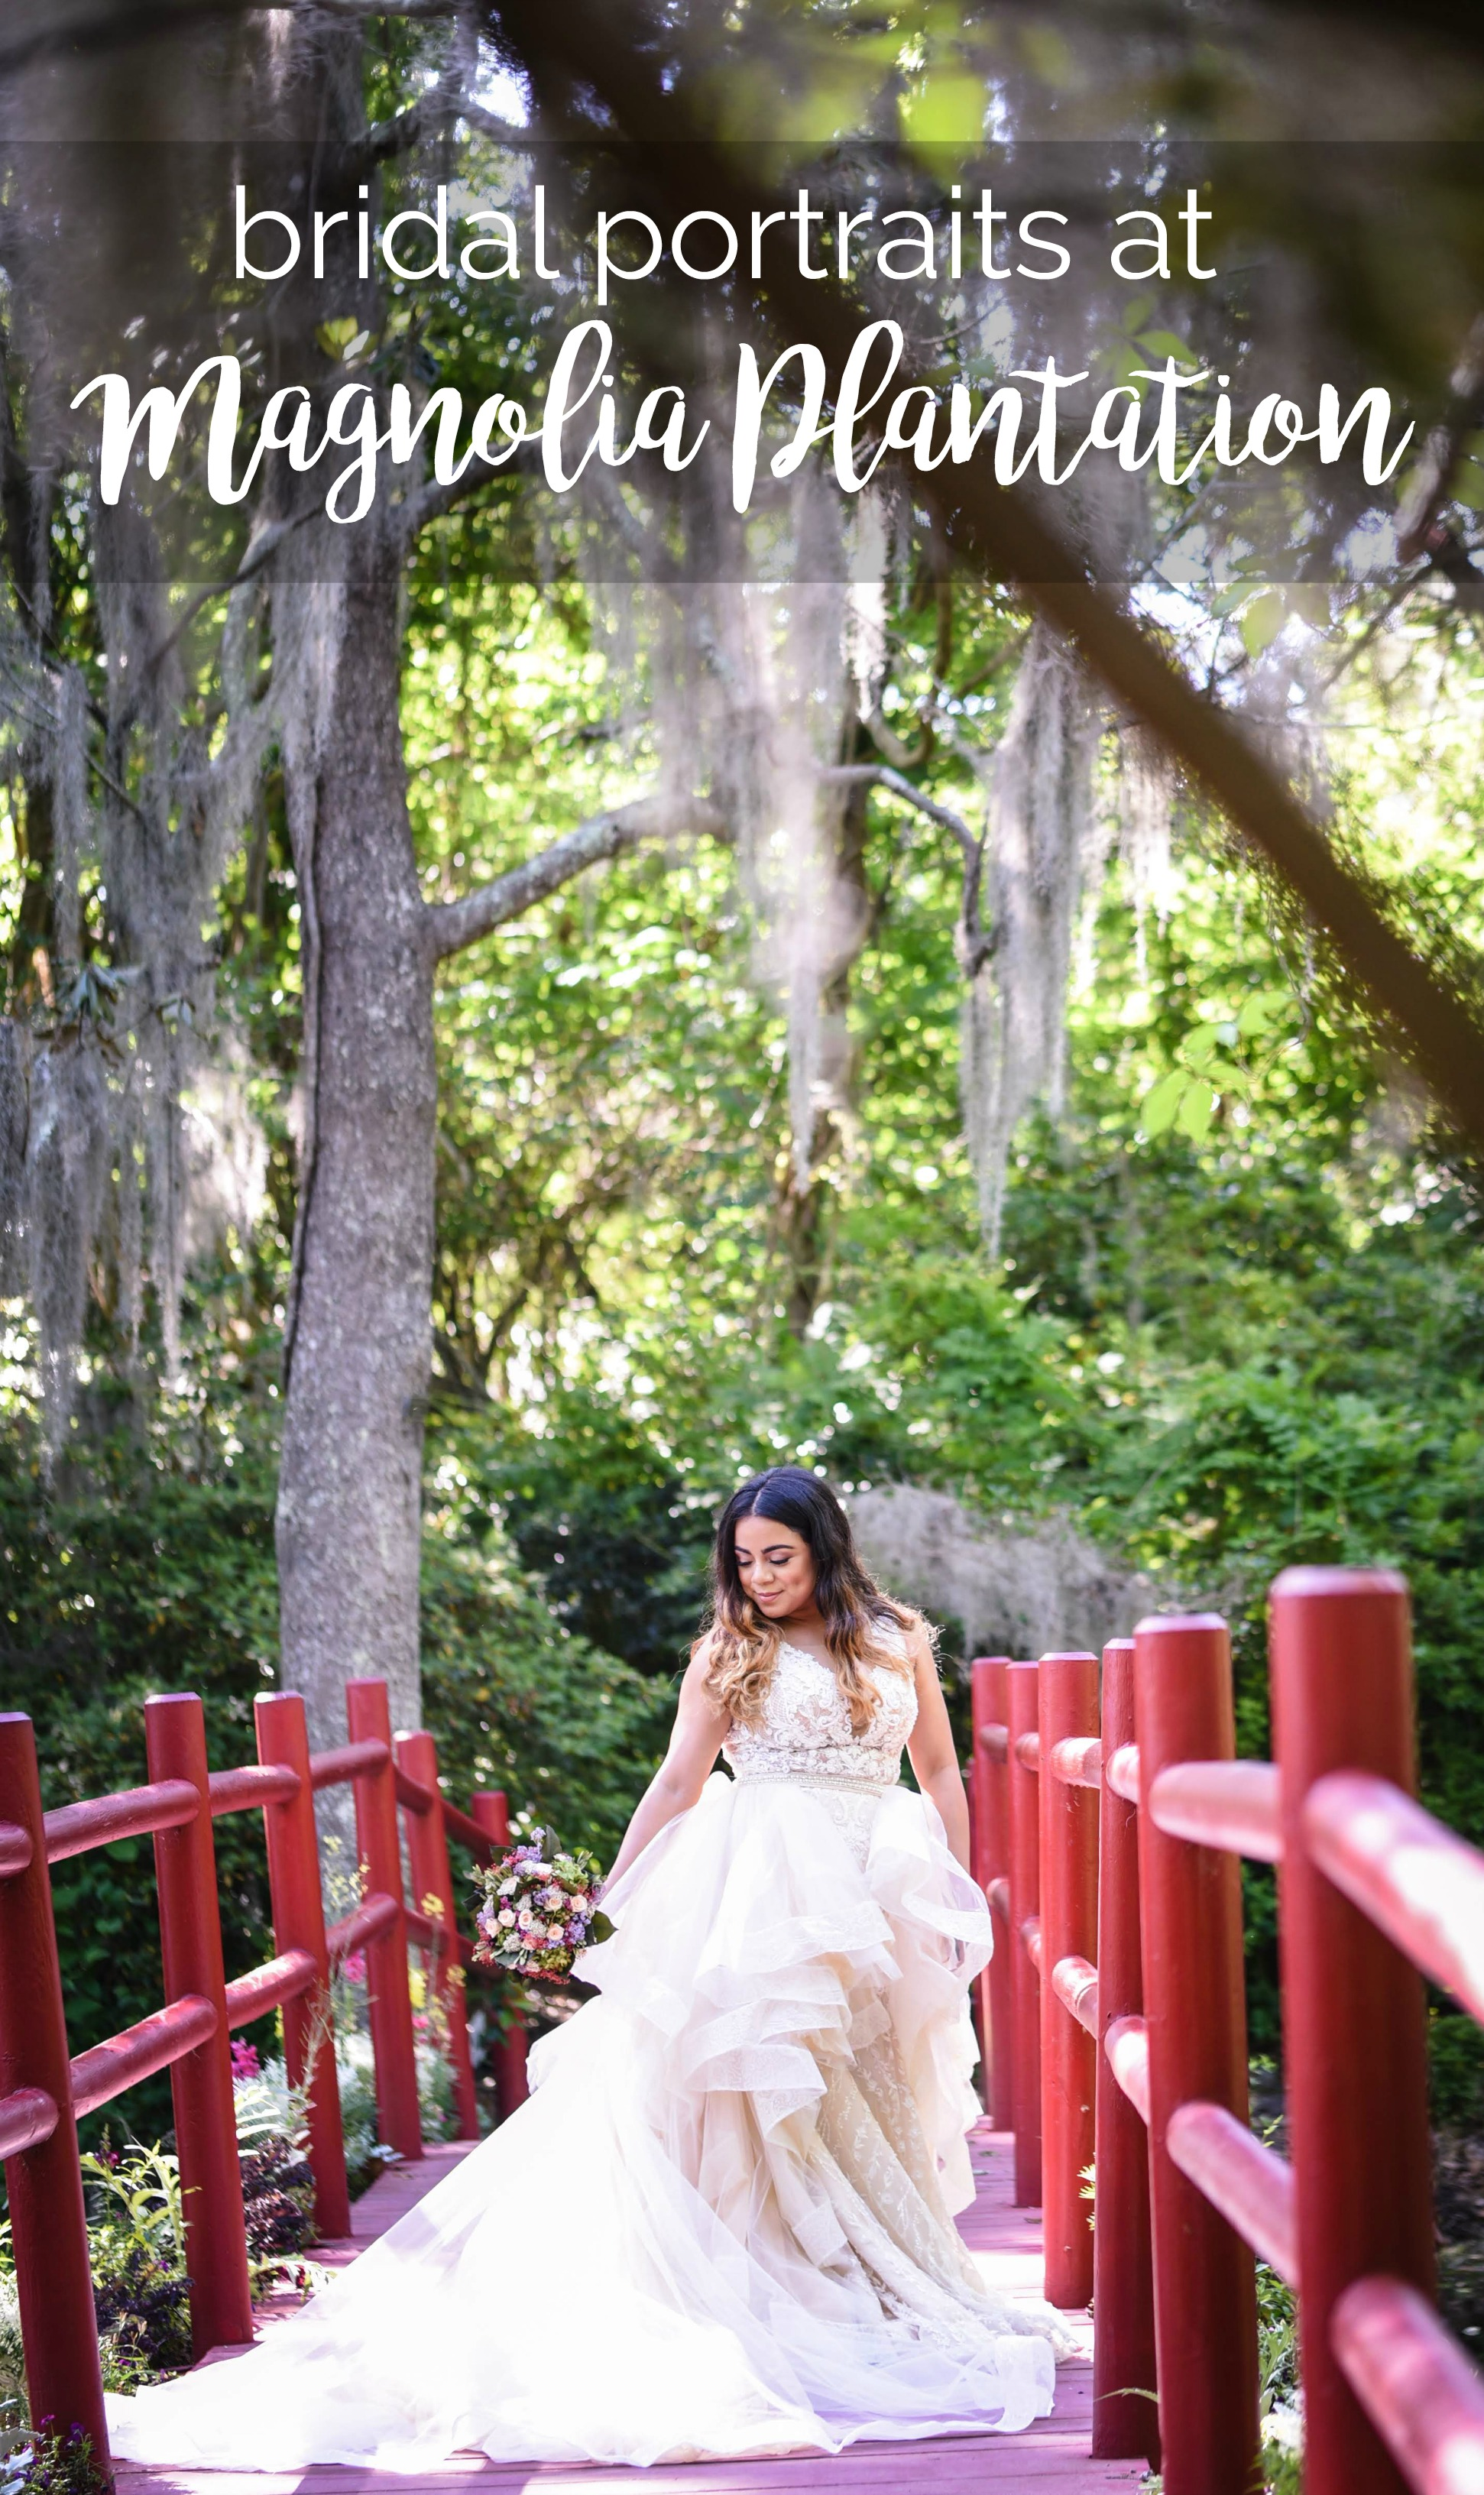 Jessica's Bridal Portrait Session at Magnolia Plantation and Gardens, Charleston, South Carolina | Palmetto State Weddings | Radiant Photography by Sydney Danielle | Charleston wedding | Charleston wedding venues